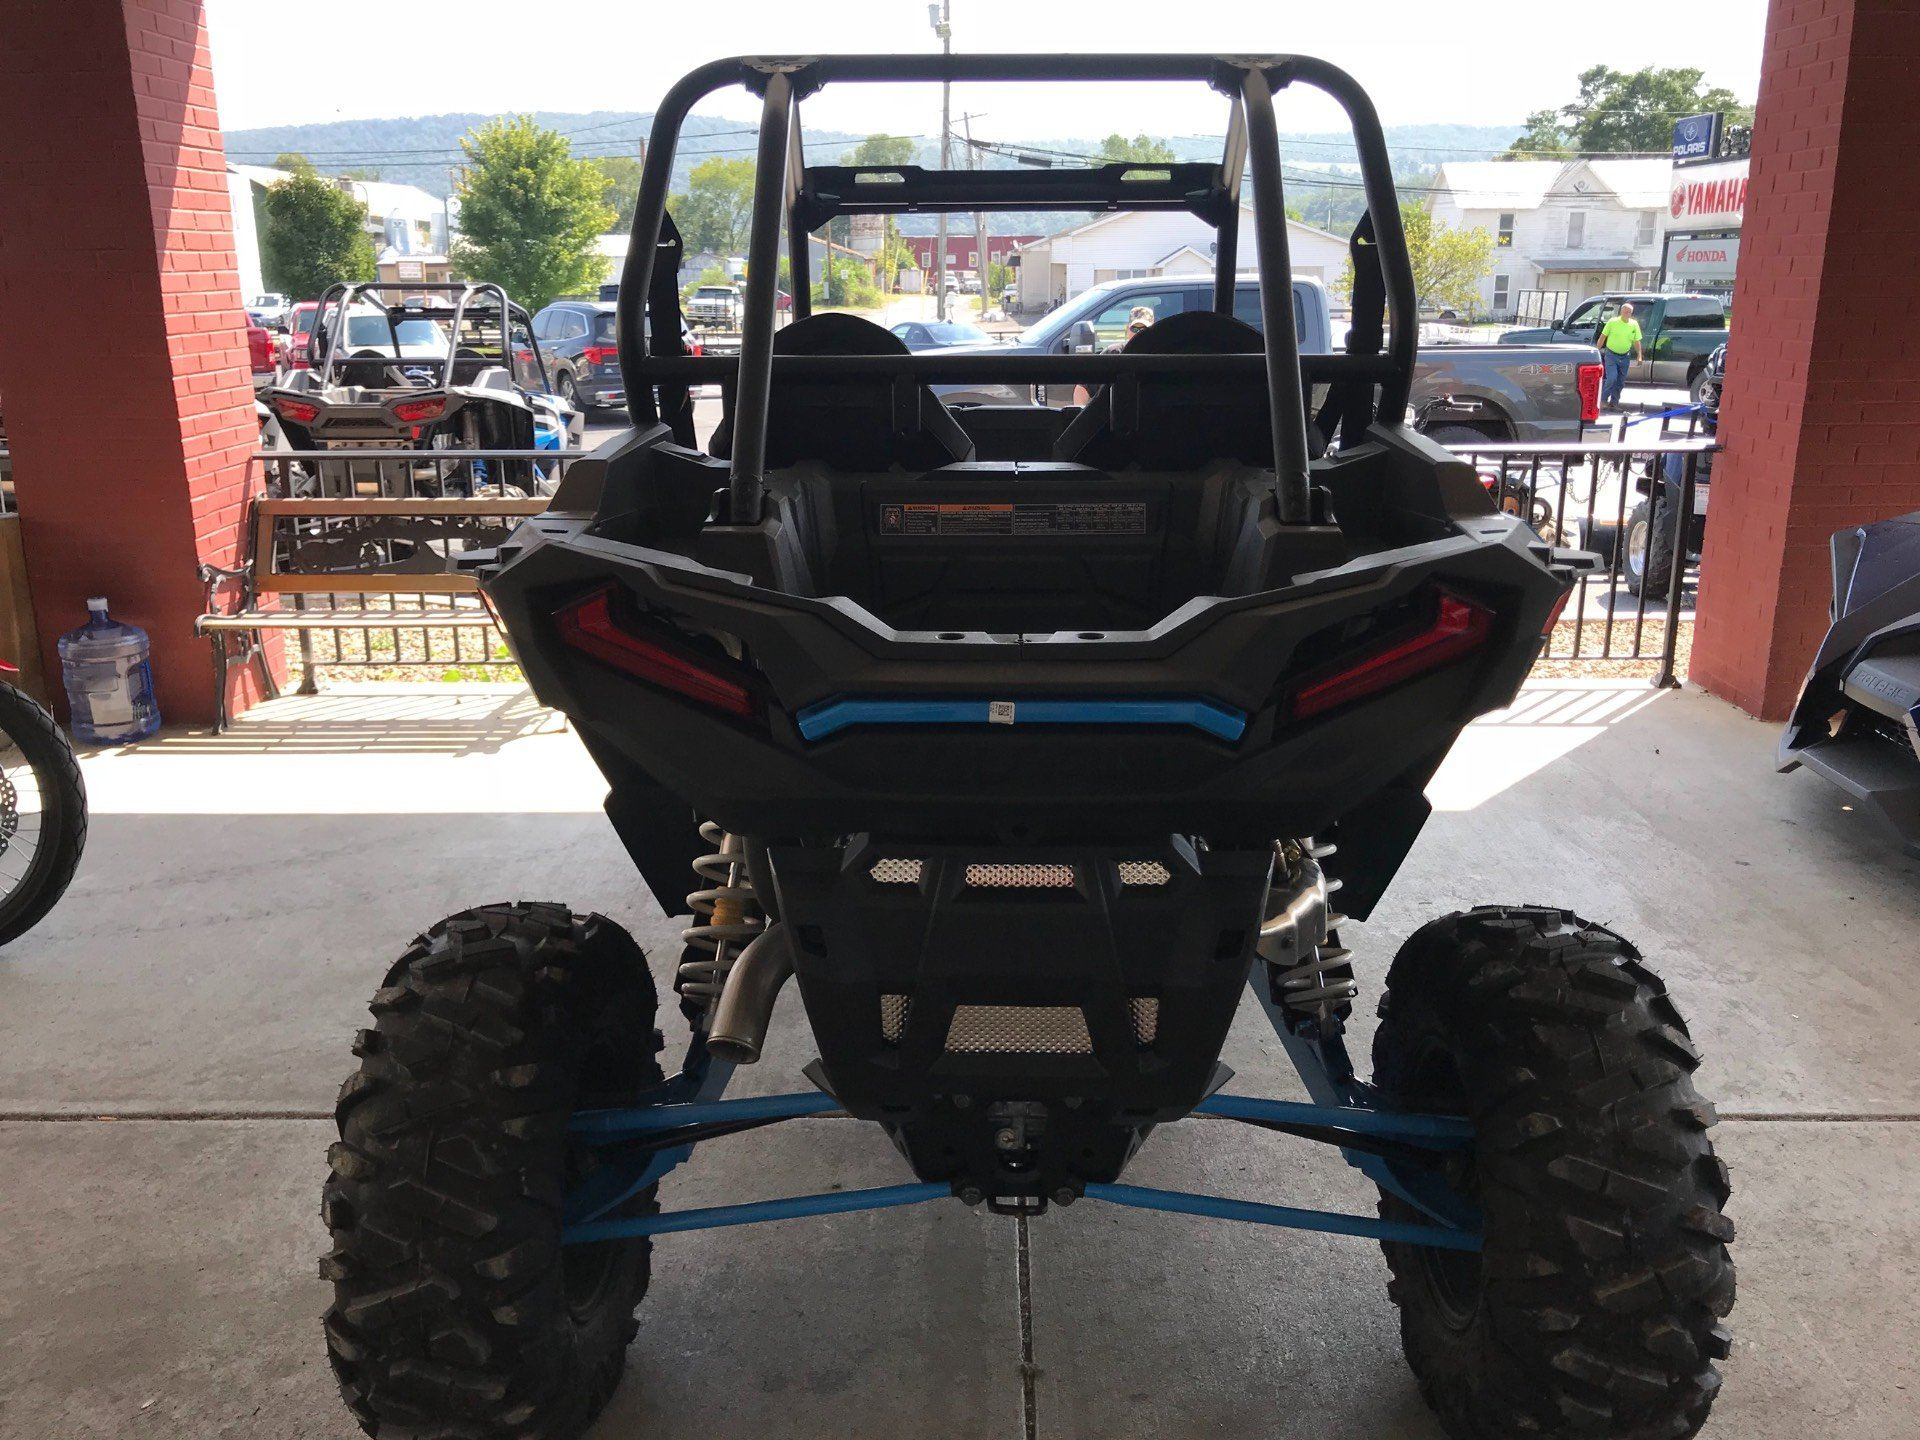 2019 Polaris RZR XP 1000 in Petersburg, West Virginia - Photo 4